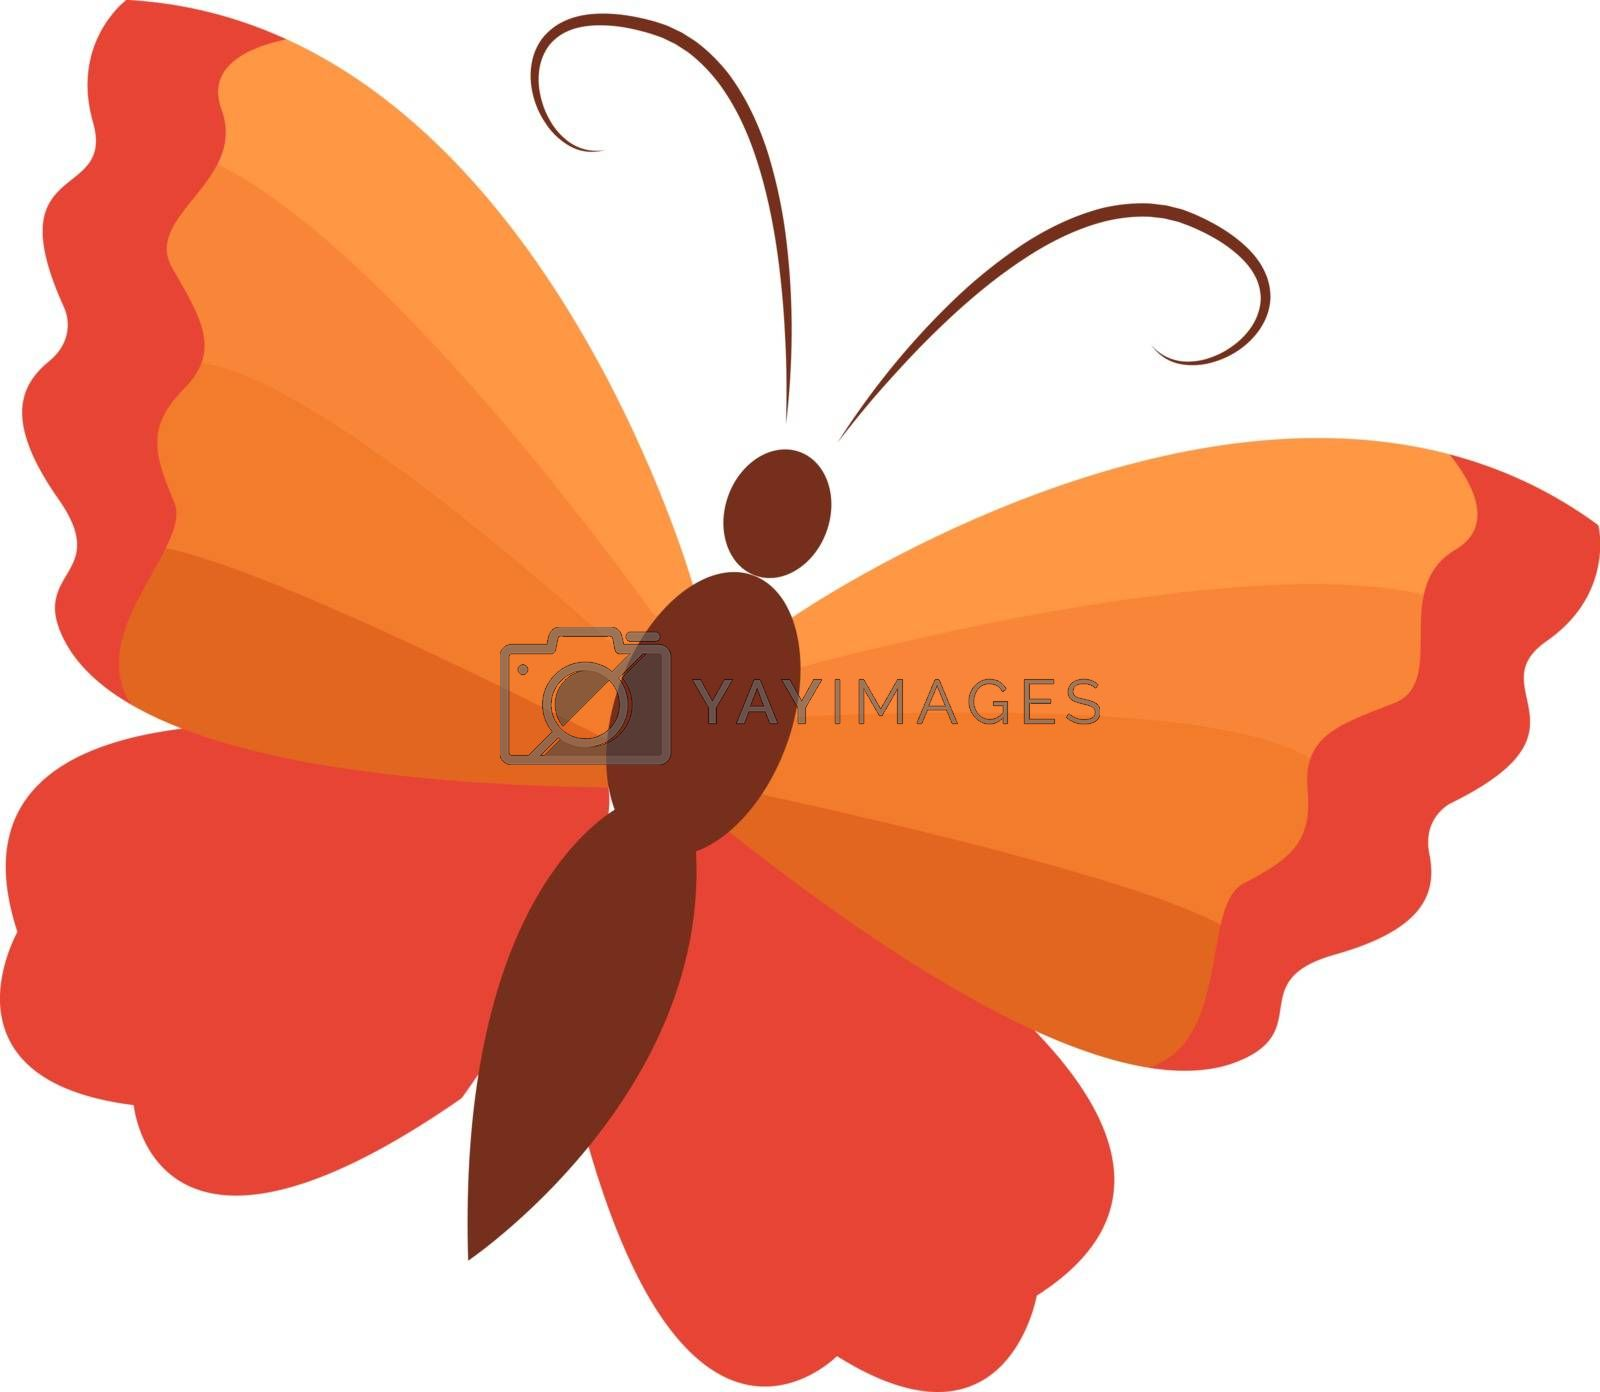 Orange butterfly, illustration, vector on white background.